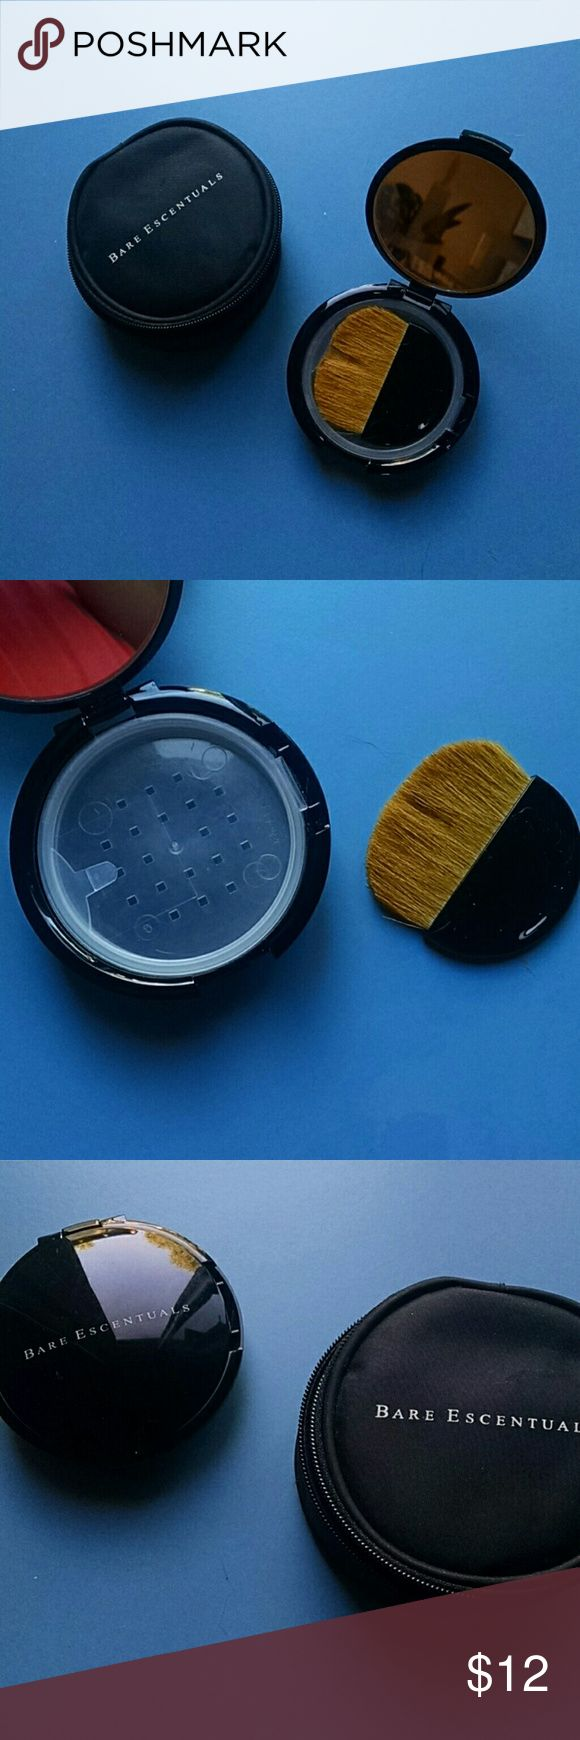 Bare essentials compact Comes with brush and carrier case. Place for any loose powder Bare Escentuals Makeup Brushes & Tools